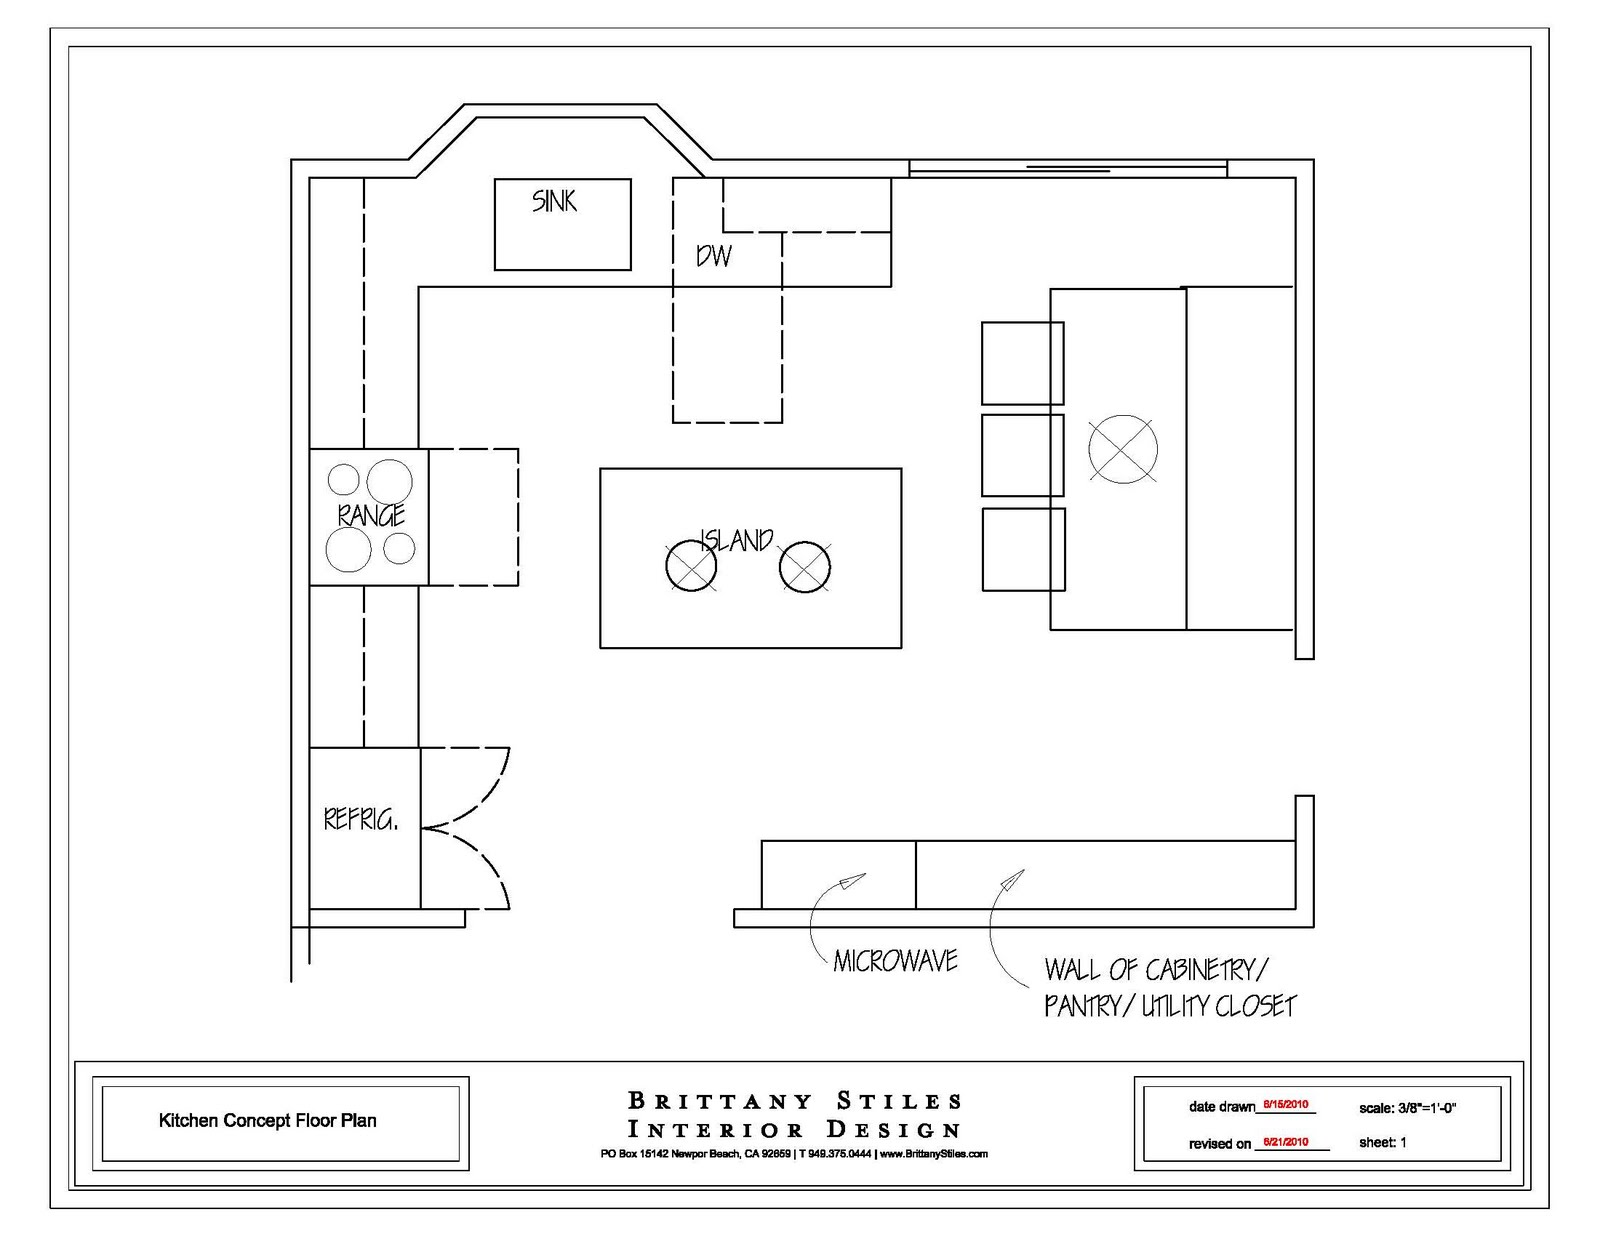 Kitchen Floor Plans Peninsula Peninsula Kitchen Layout  Interior Design Project Role